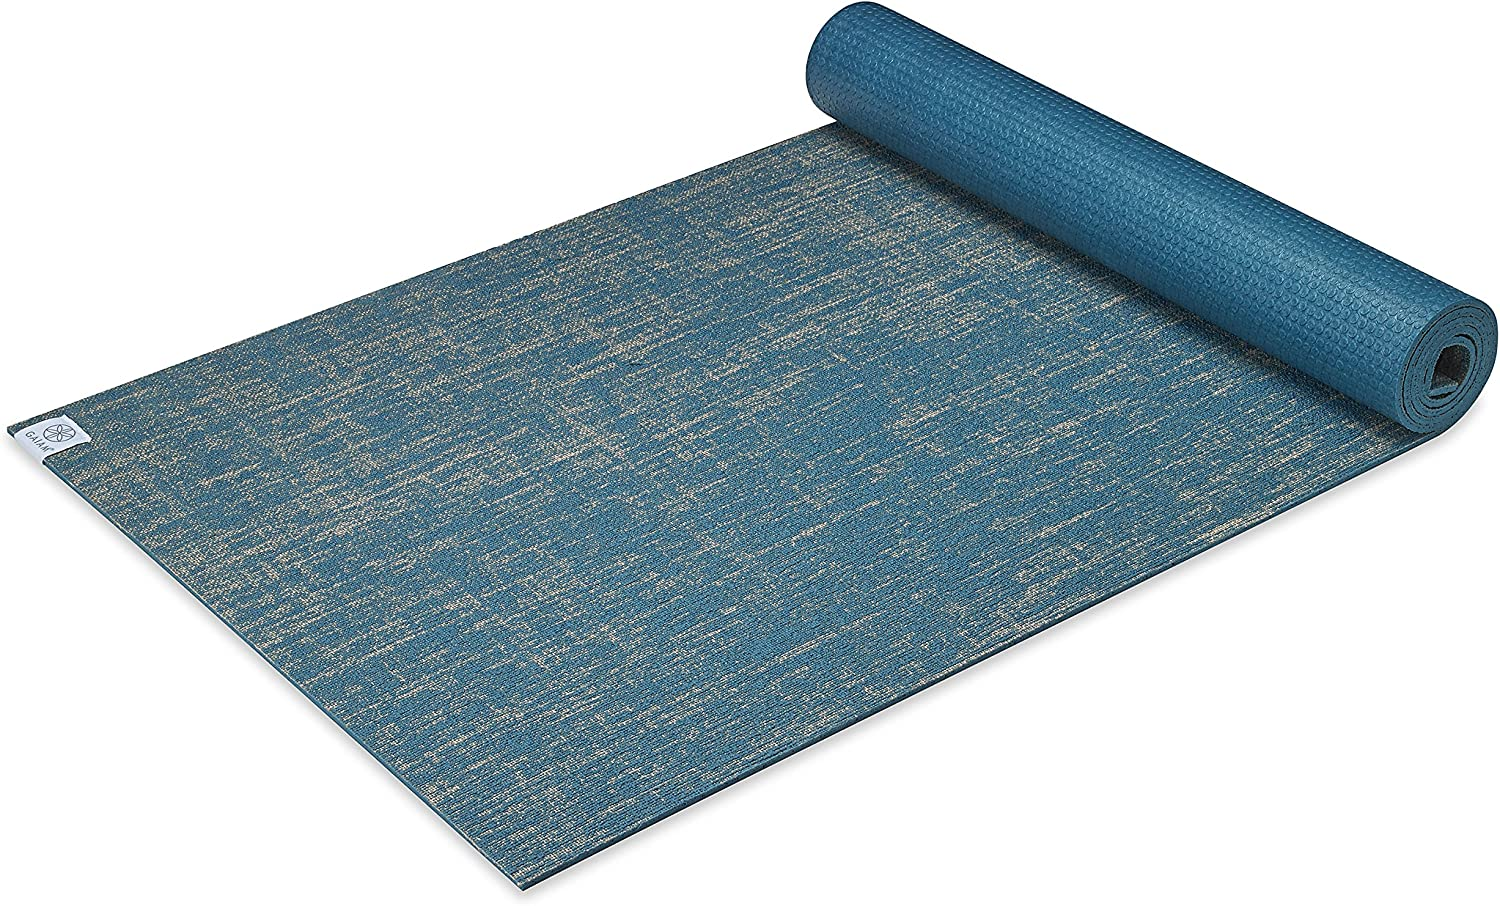 Gaiam Yoga Mat Jute Extra Thick Exercise Fitness Mat for All Types of Yoga, Pilates Floor Exercises